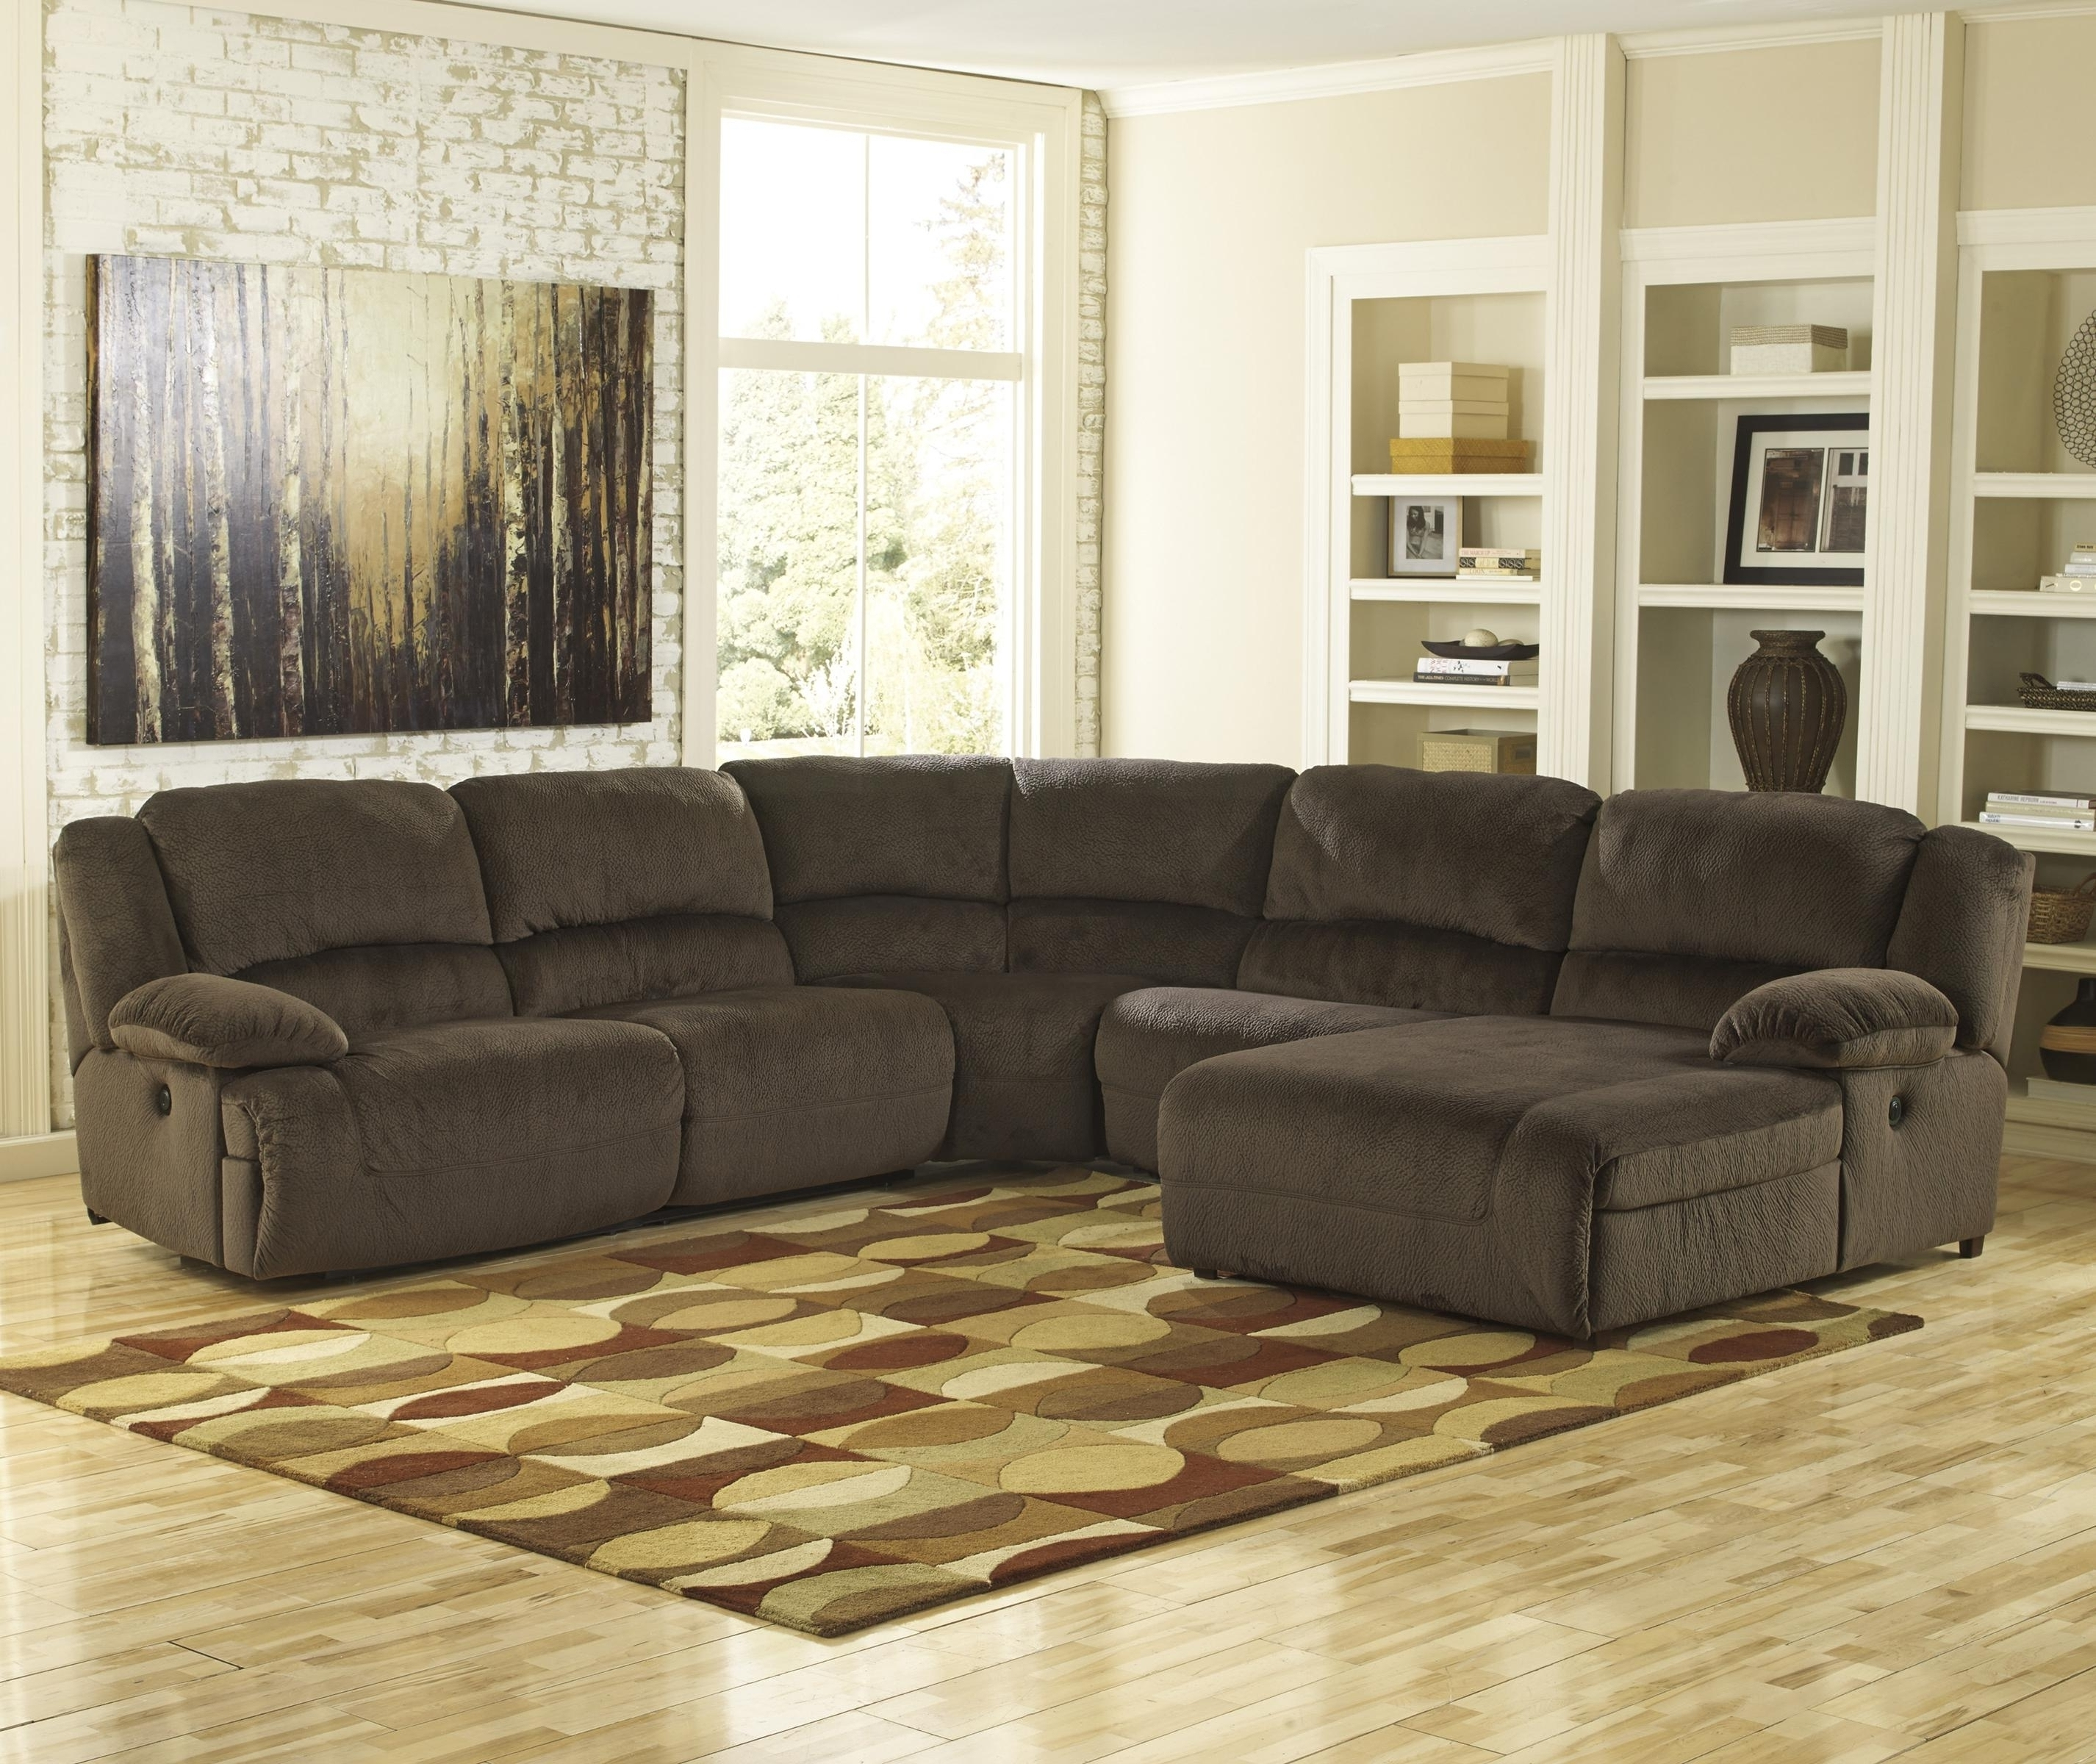 Tampa Sectional Sofas Intended For Popular Sectional Sofas Tampa Fl (Gallery 20 of 20)